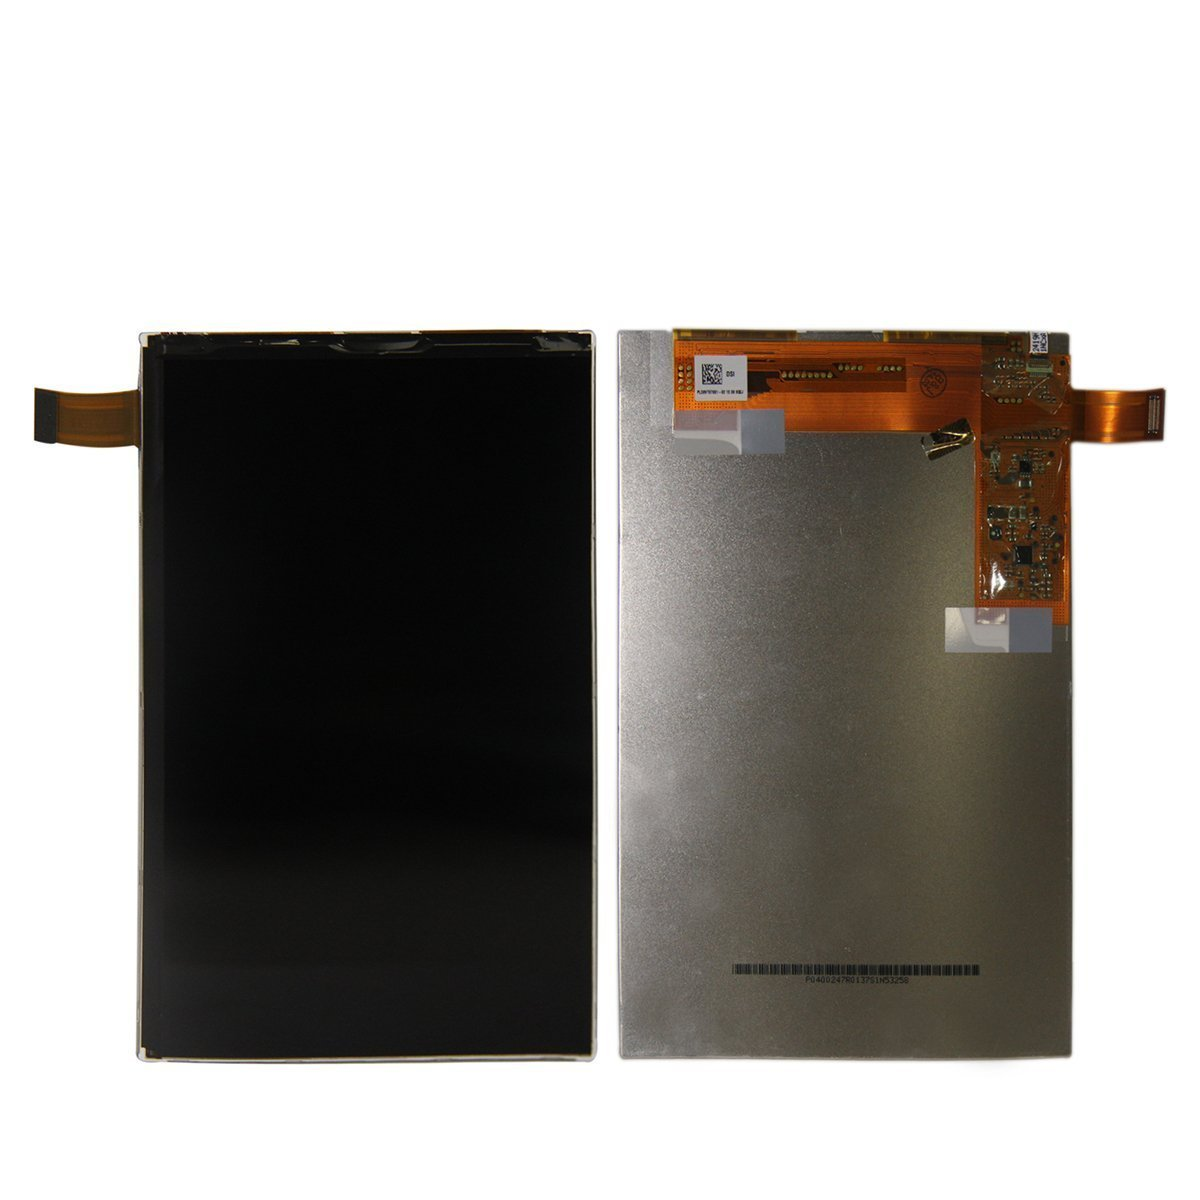 OEM LCD Display Screen 7'' Inches For Asus MeMO Pad HD 7 ME173 ME173X Tablet Replacement Part